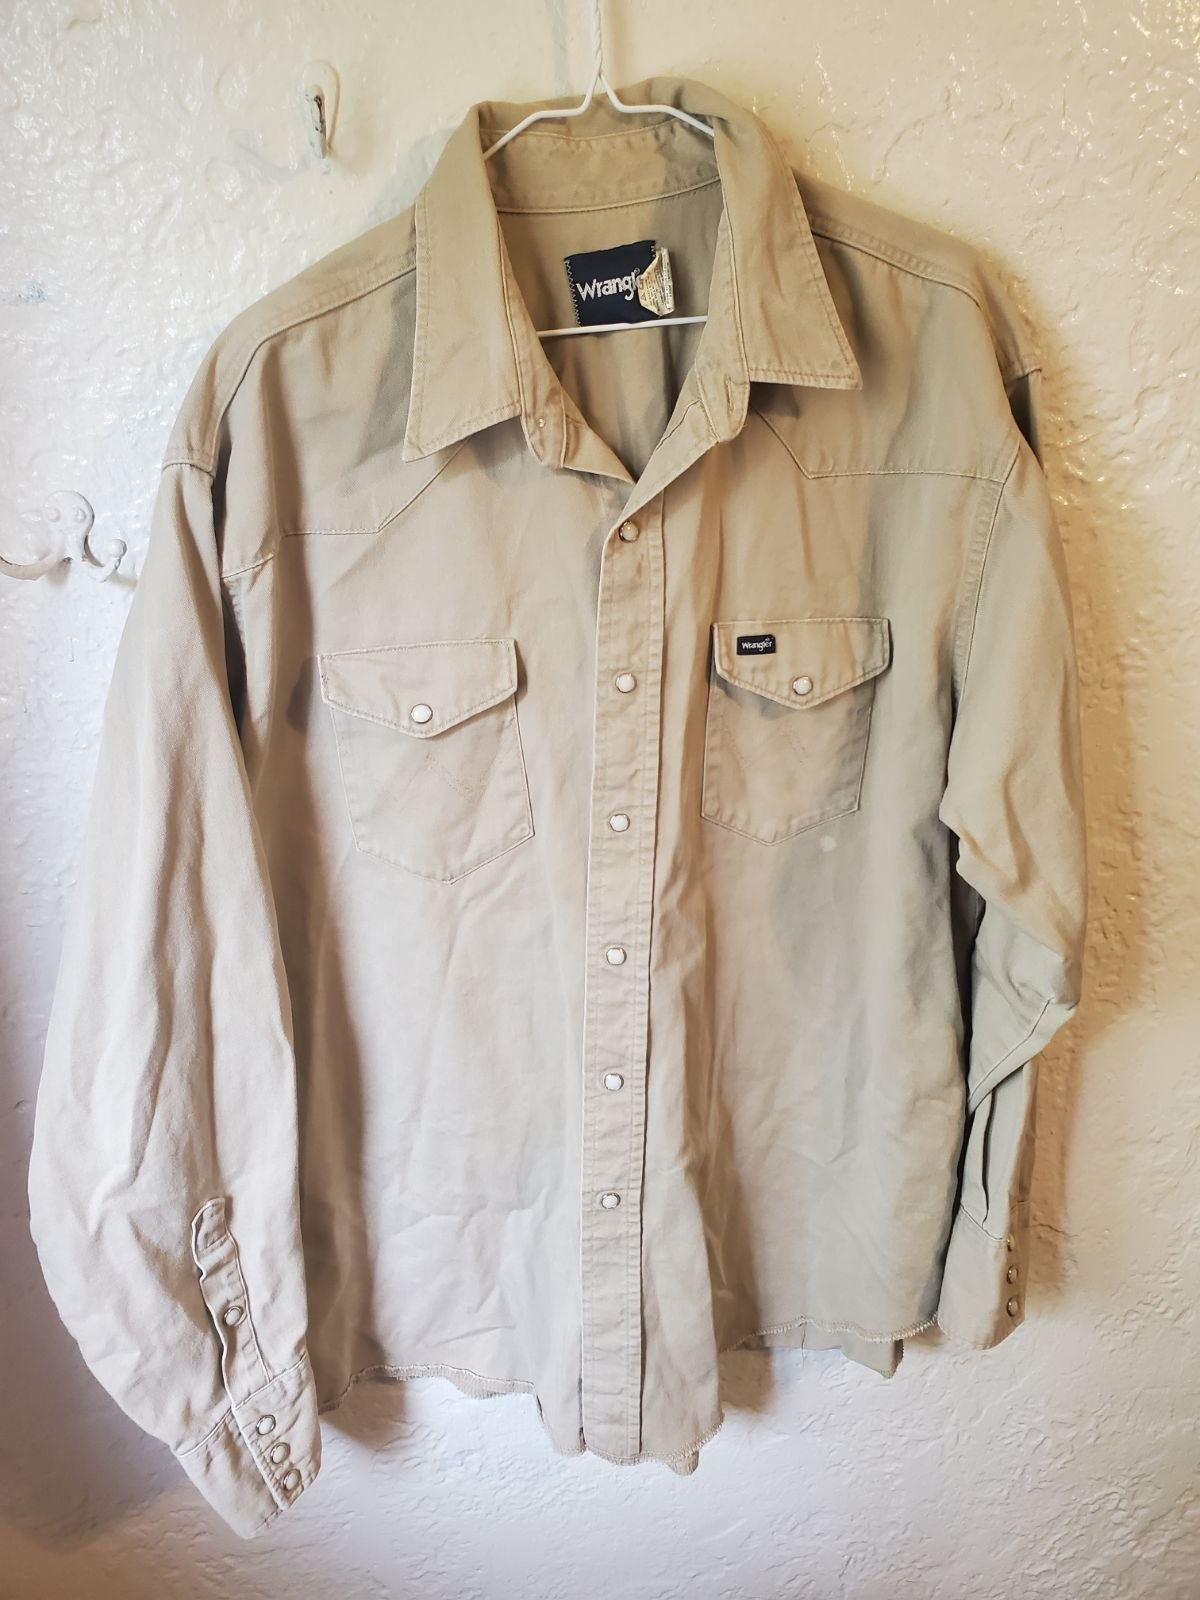 2XL Wrangler Work Shirt